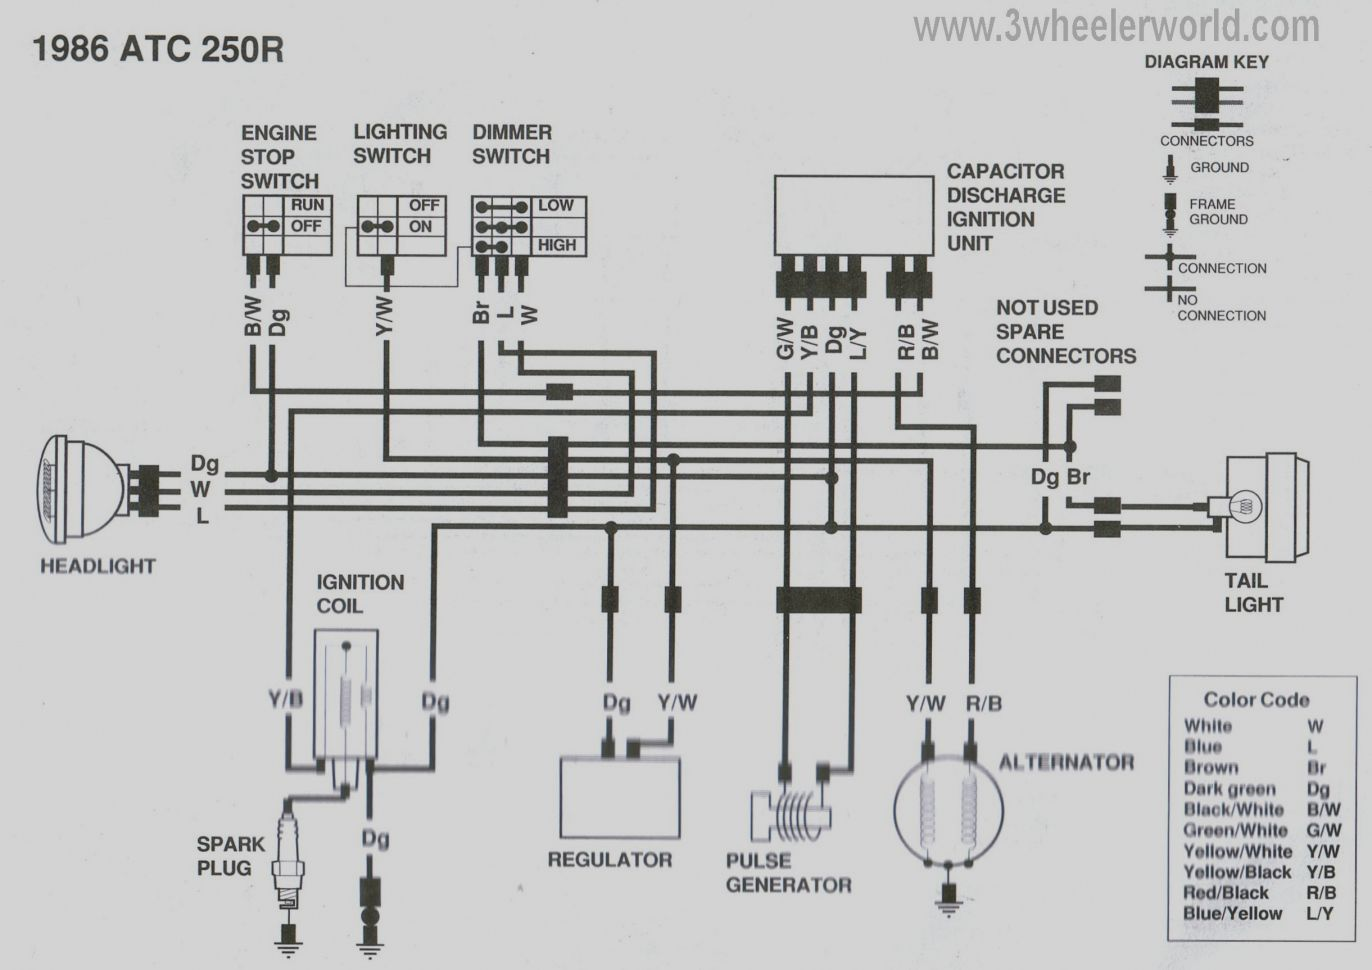 Schematic Diagram Key